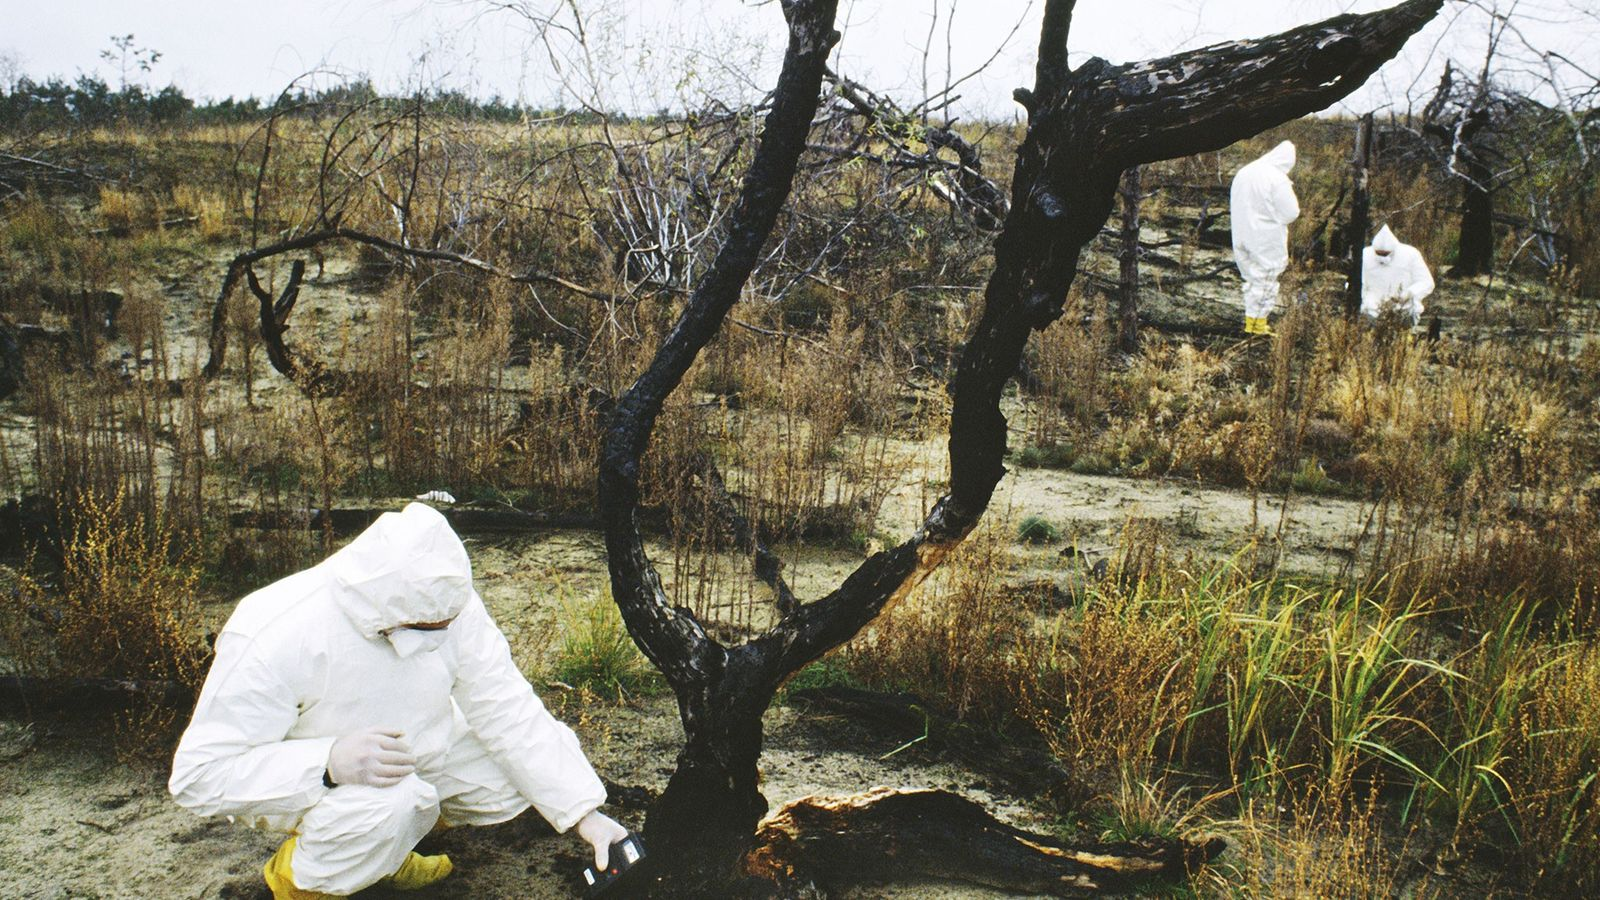 The cleanup of the area surrounding the Chernobyl nuclear disaster is expected to continue for decades, ...